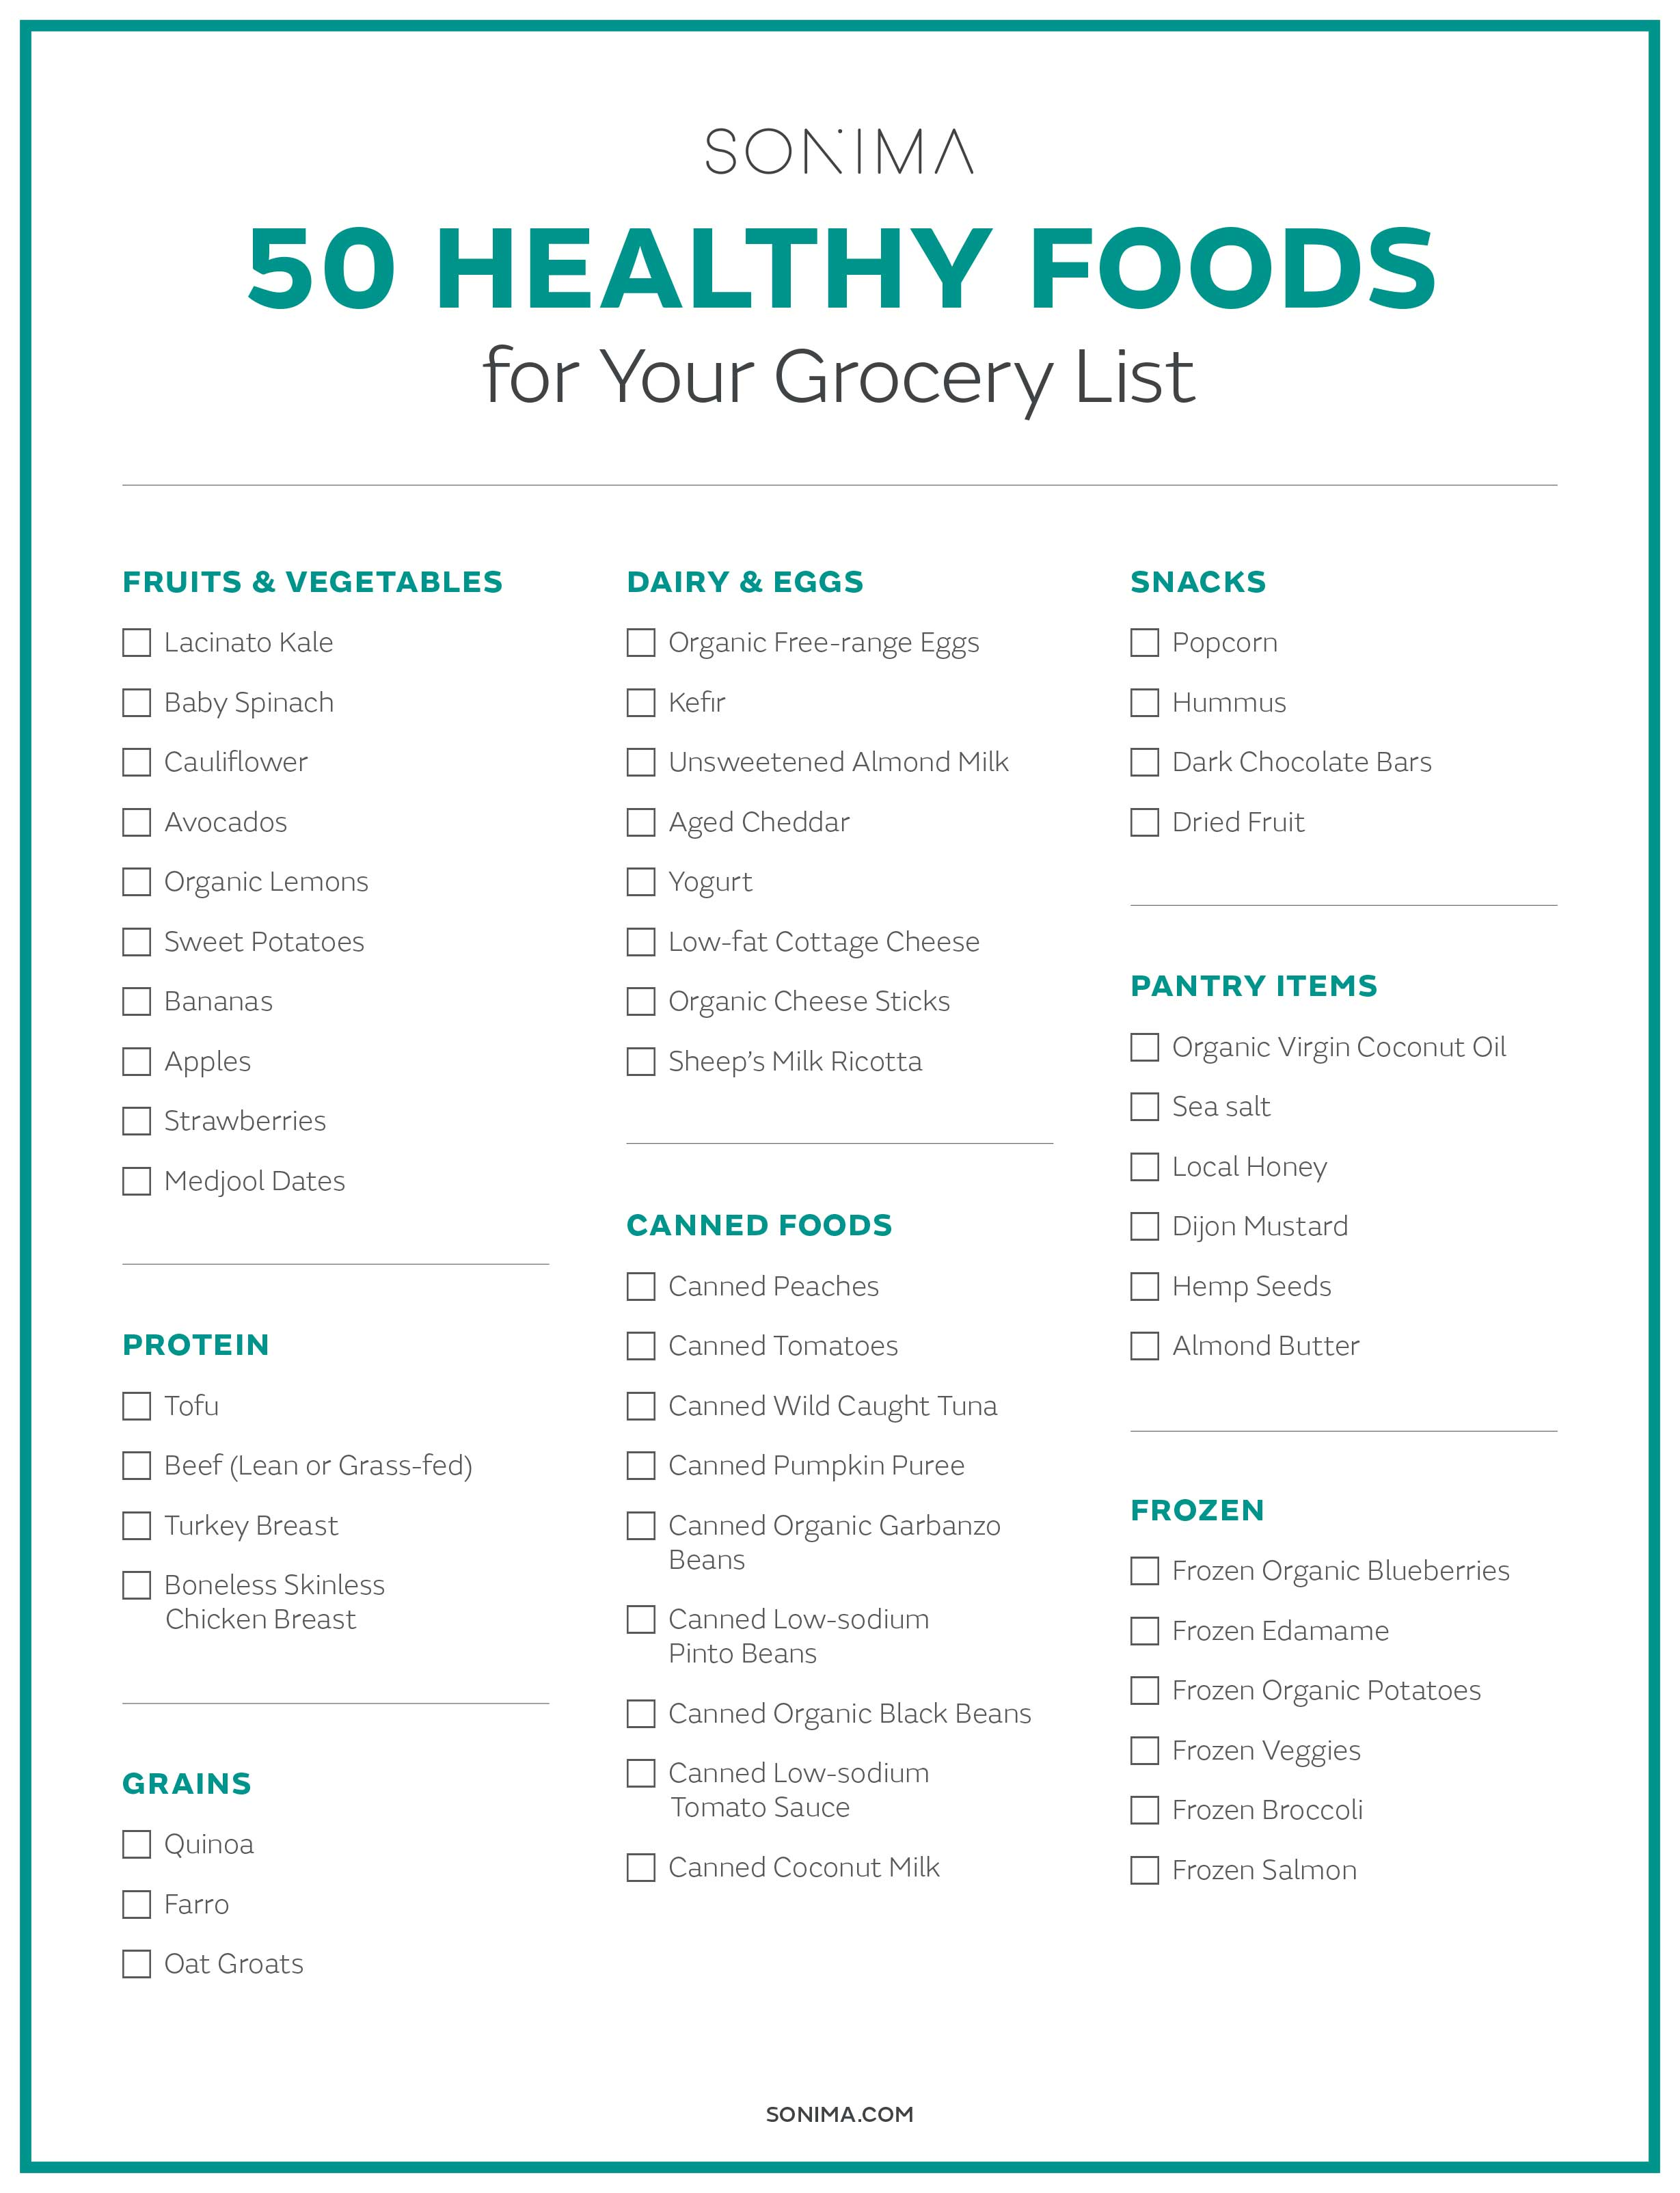 50 Healthy Foods to Add to Your Grocery List - Sonima